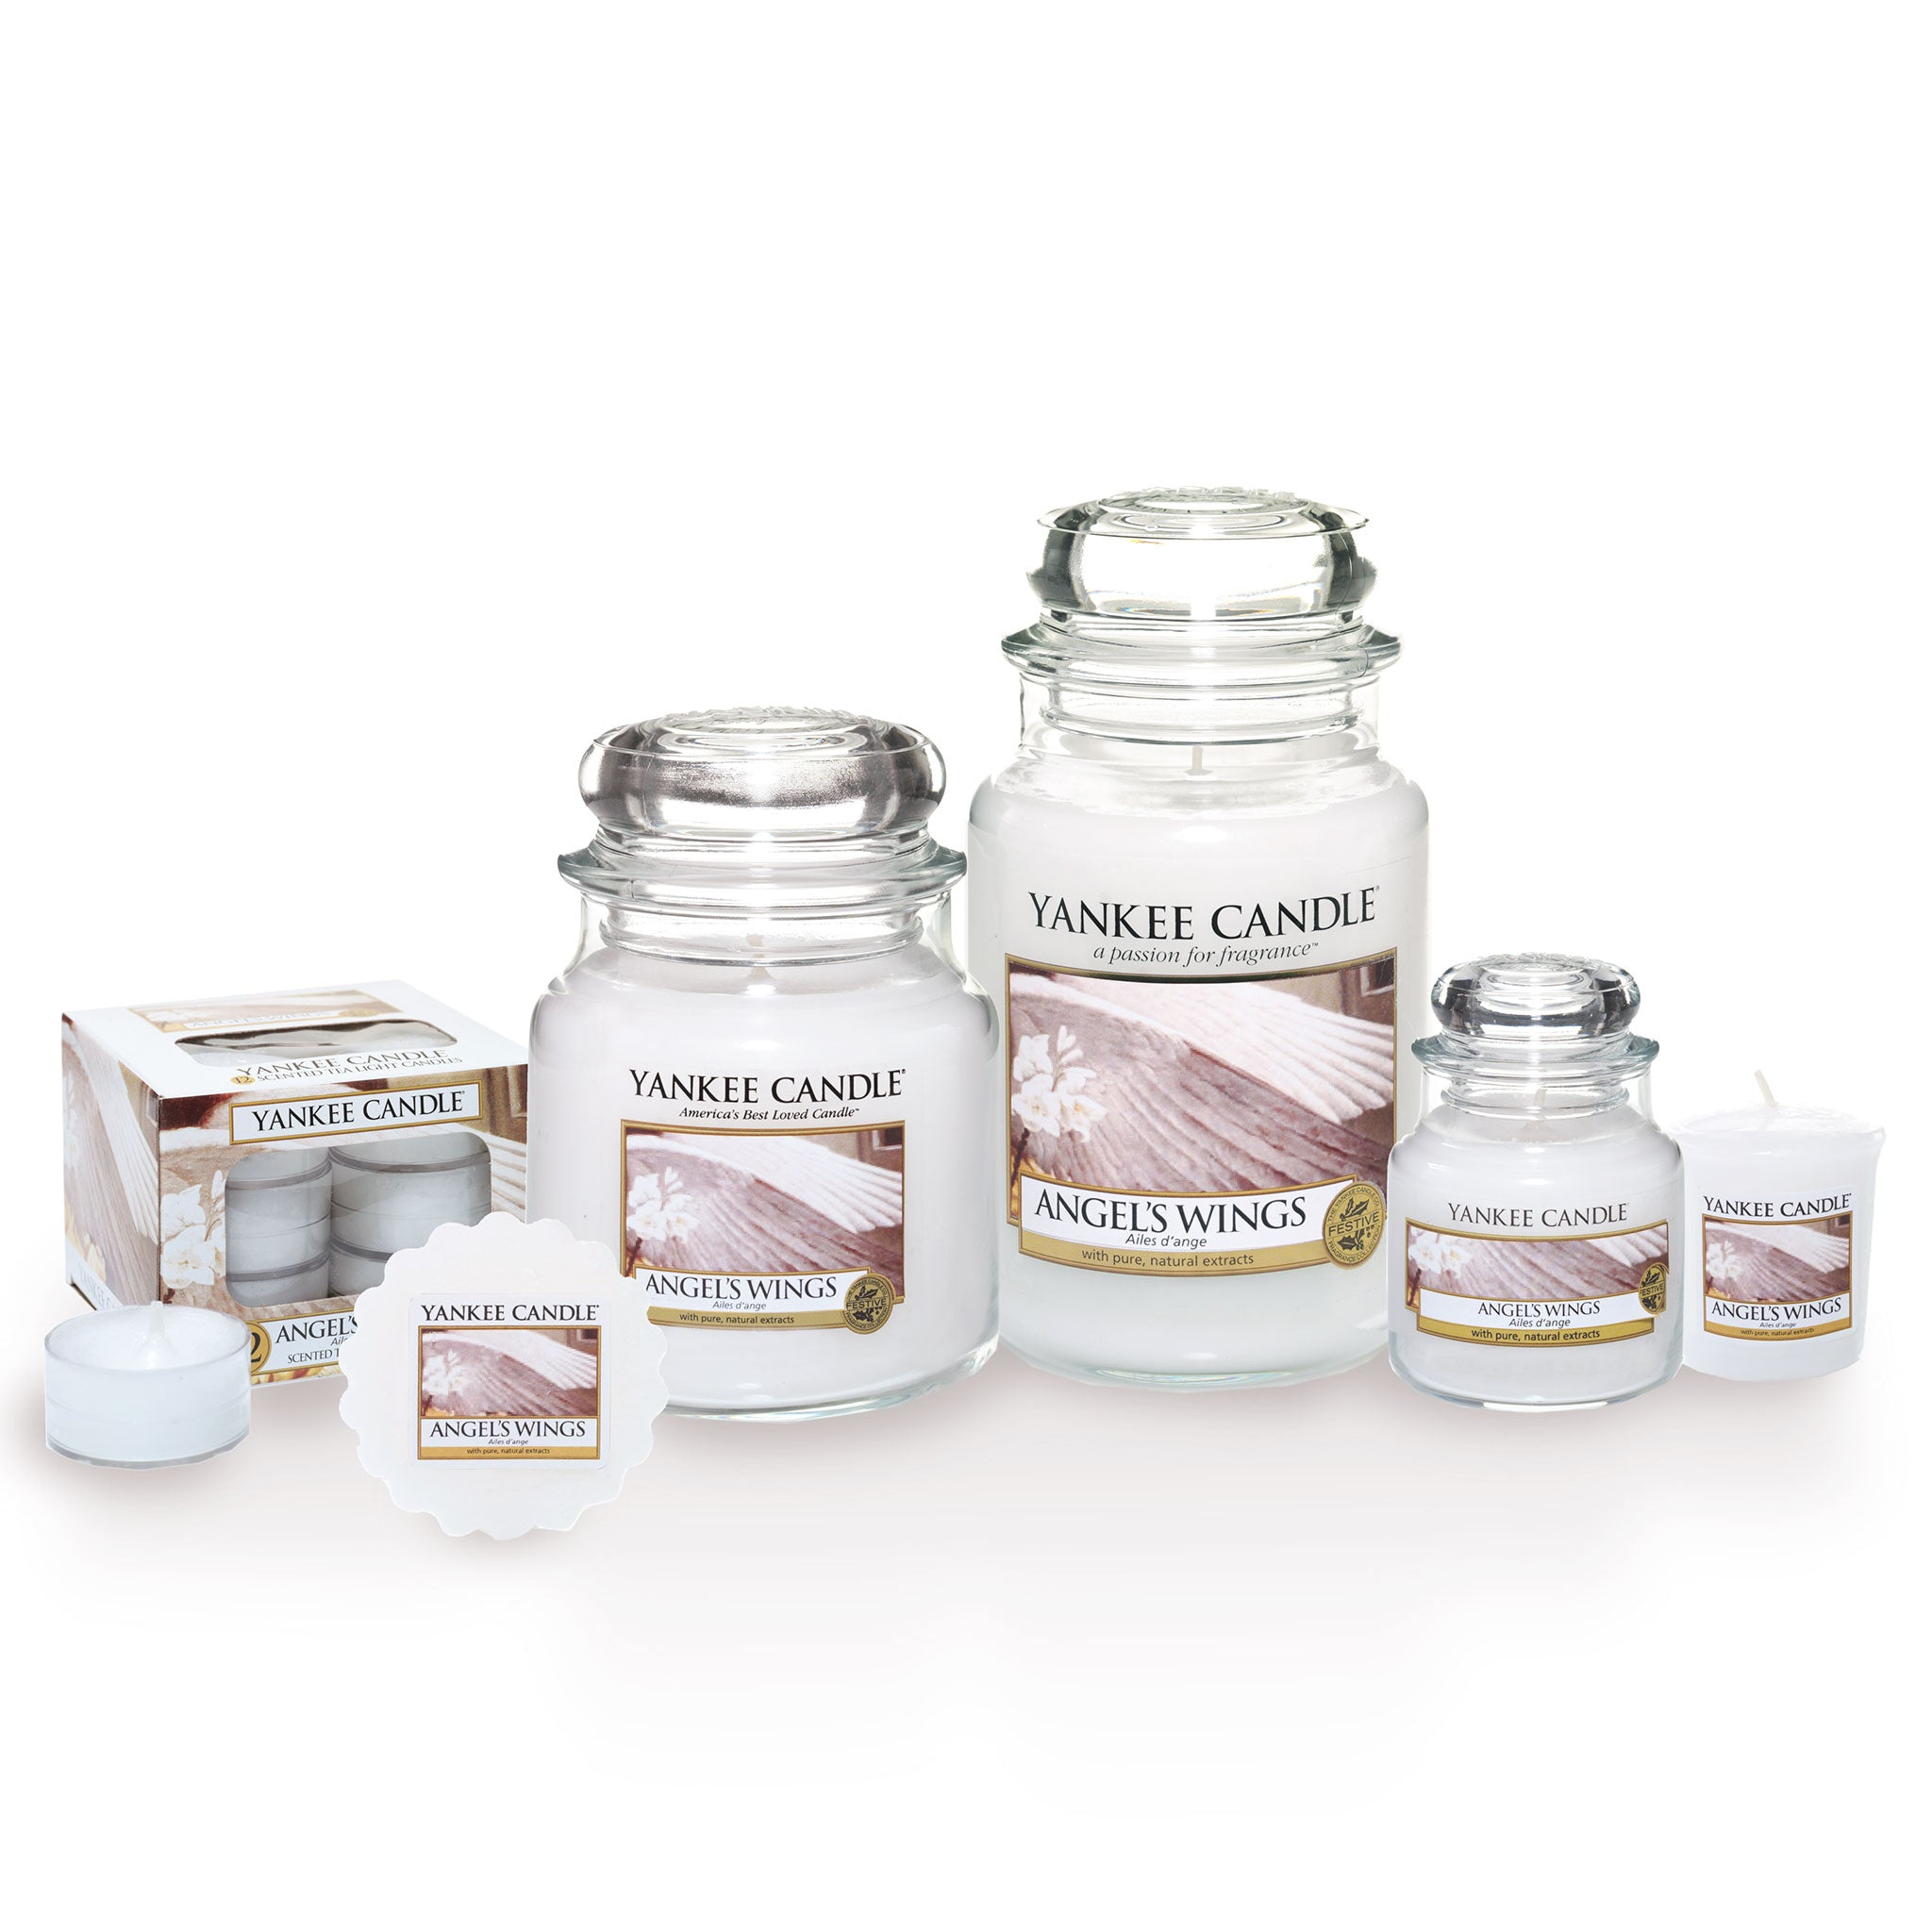 ANGEL'S WINGS -Yankee Candle- Giara Grande